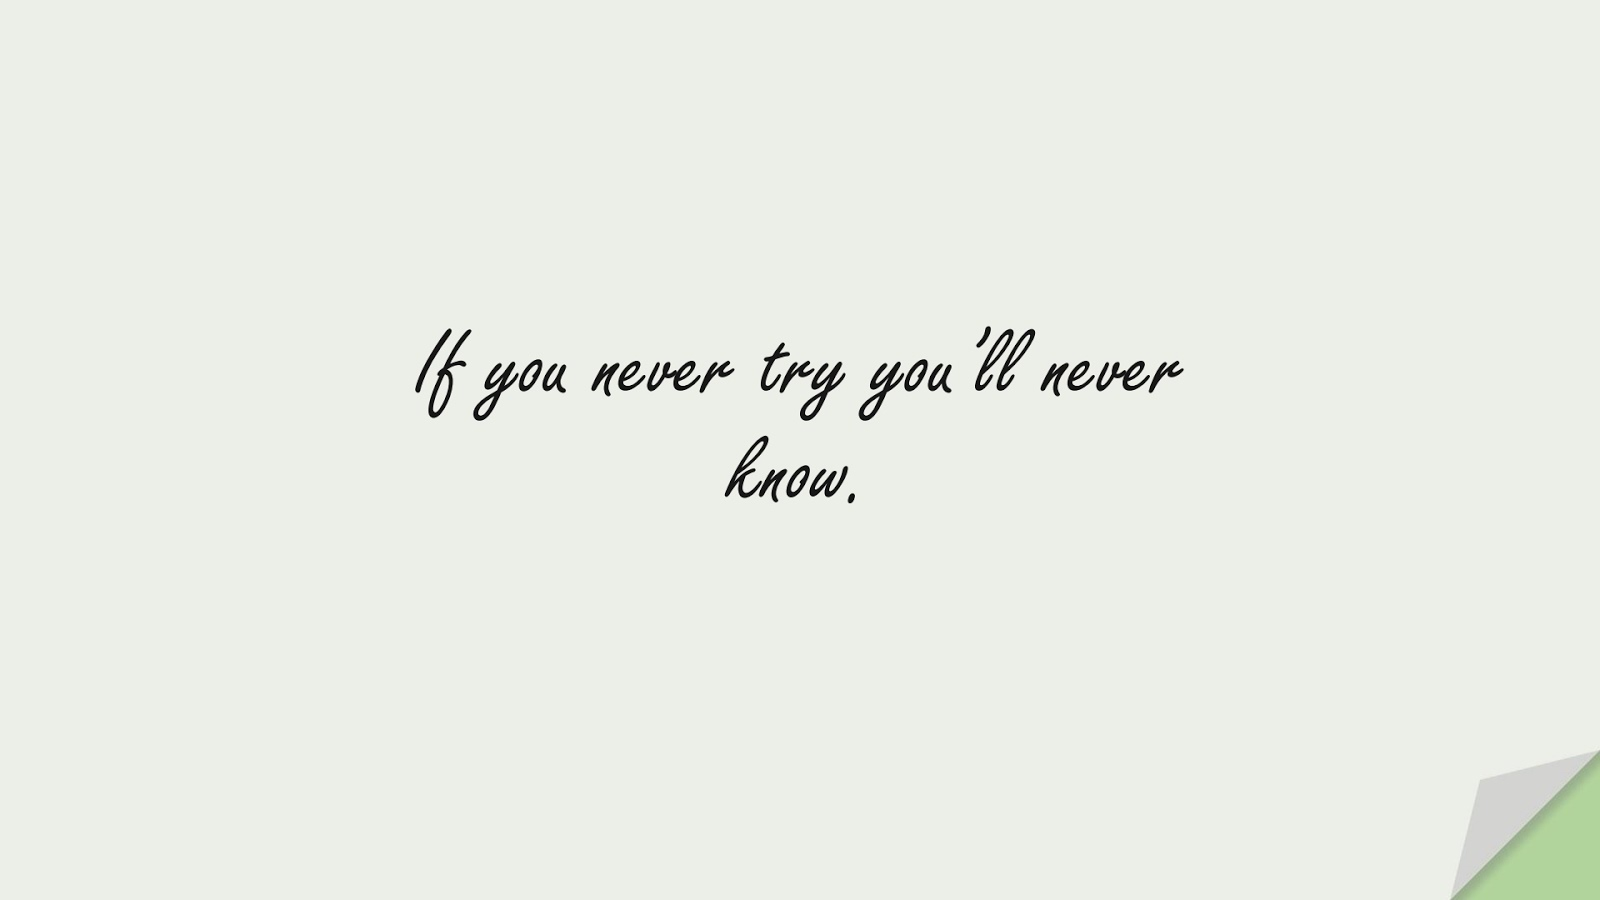 If you never try you'll never know.FALSE